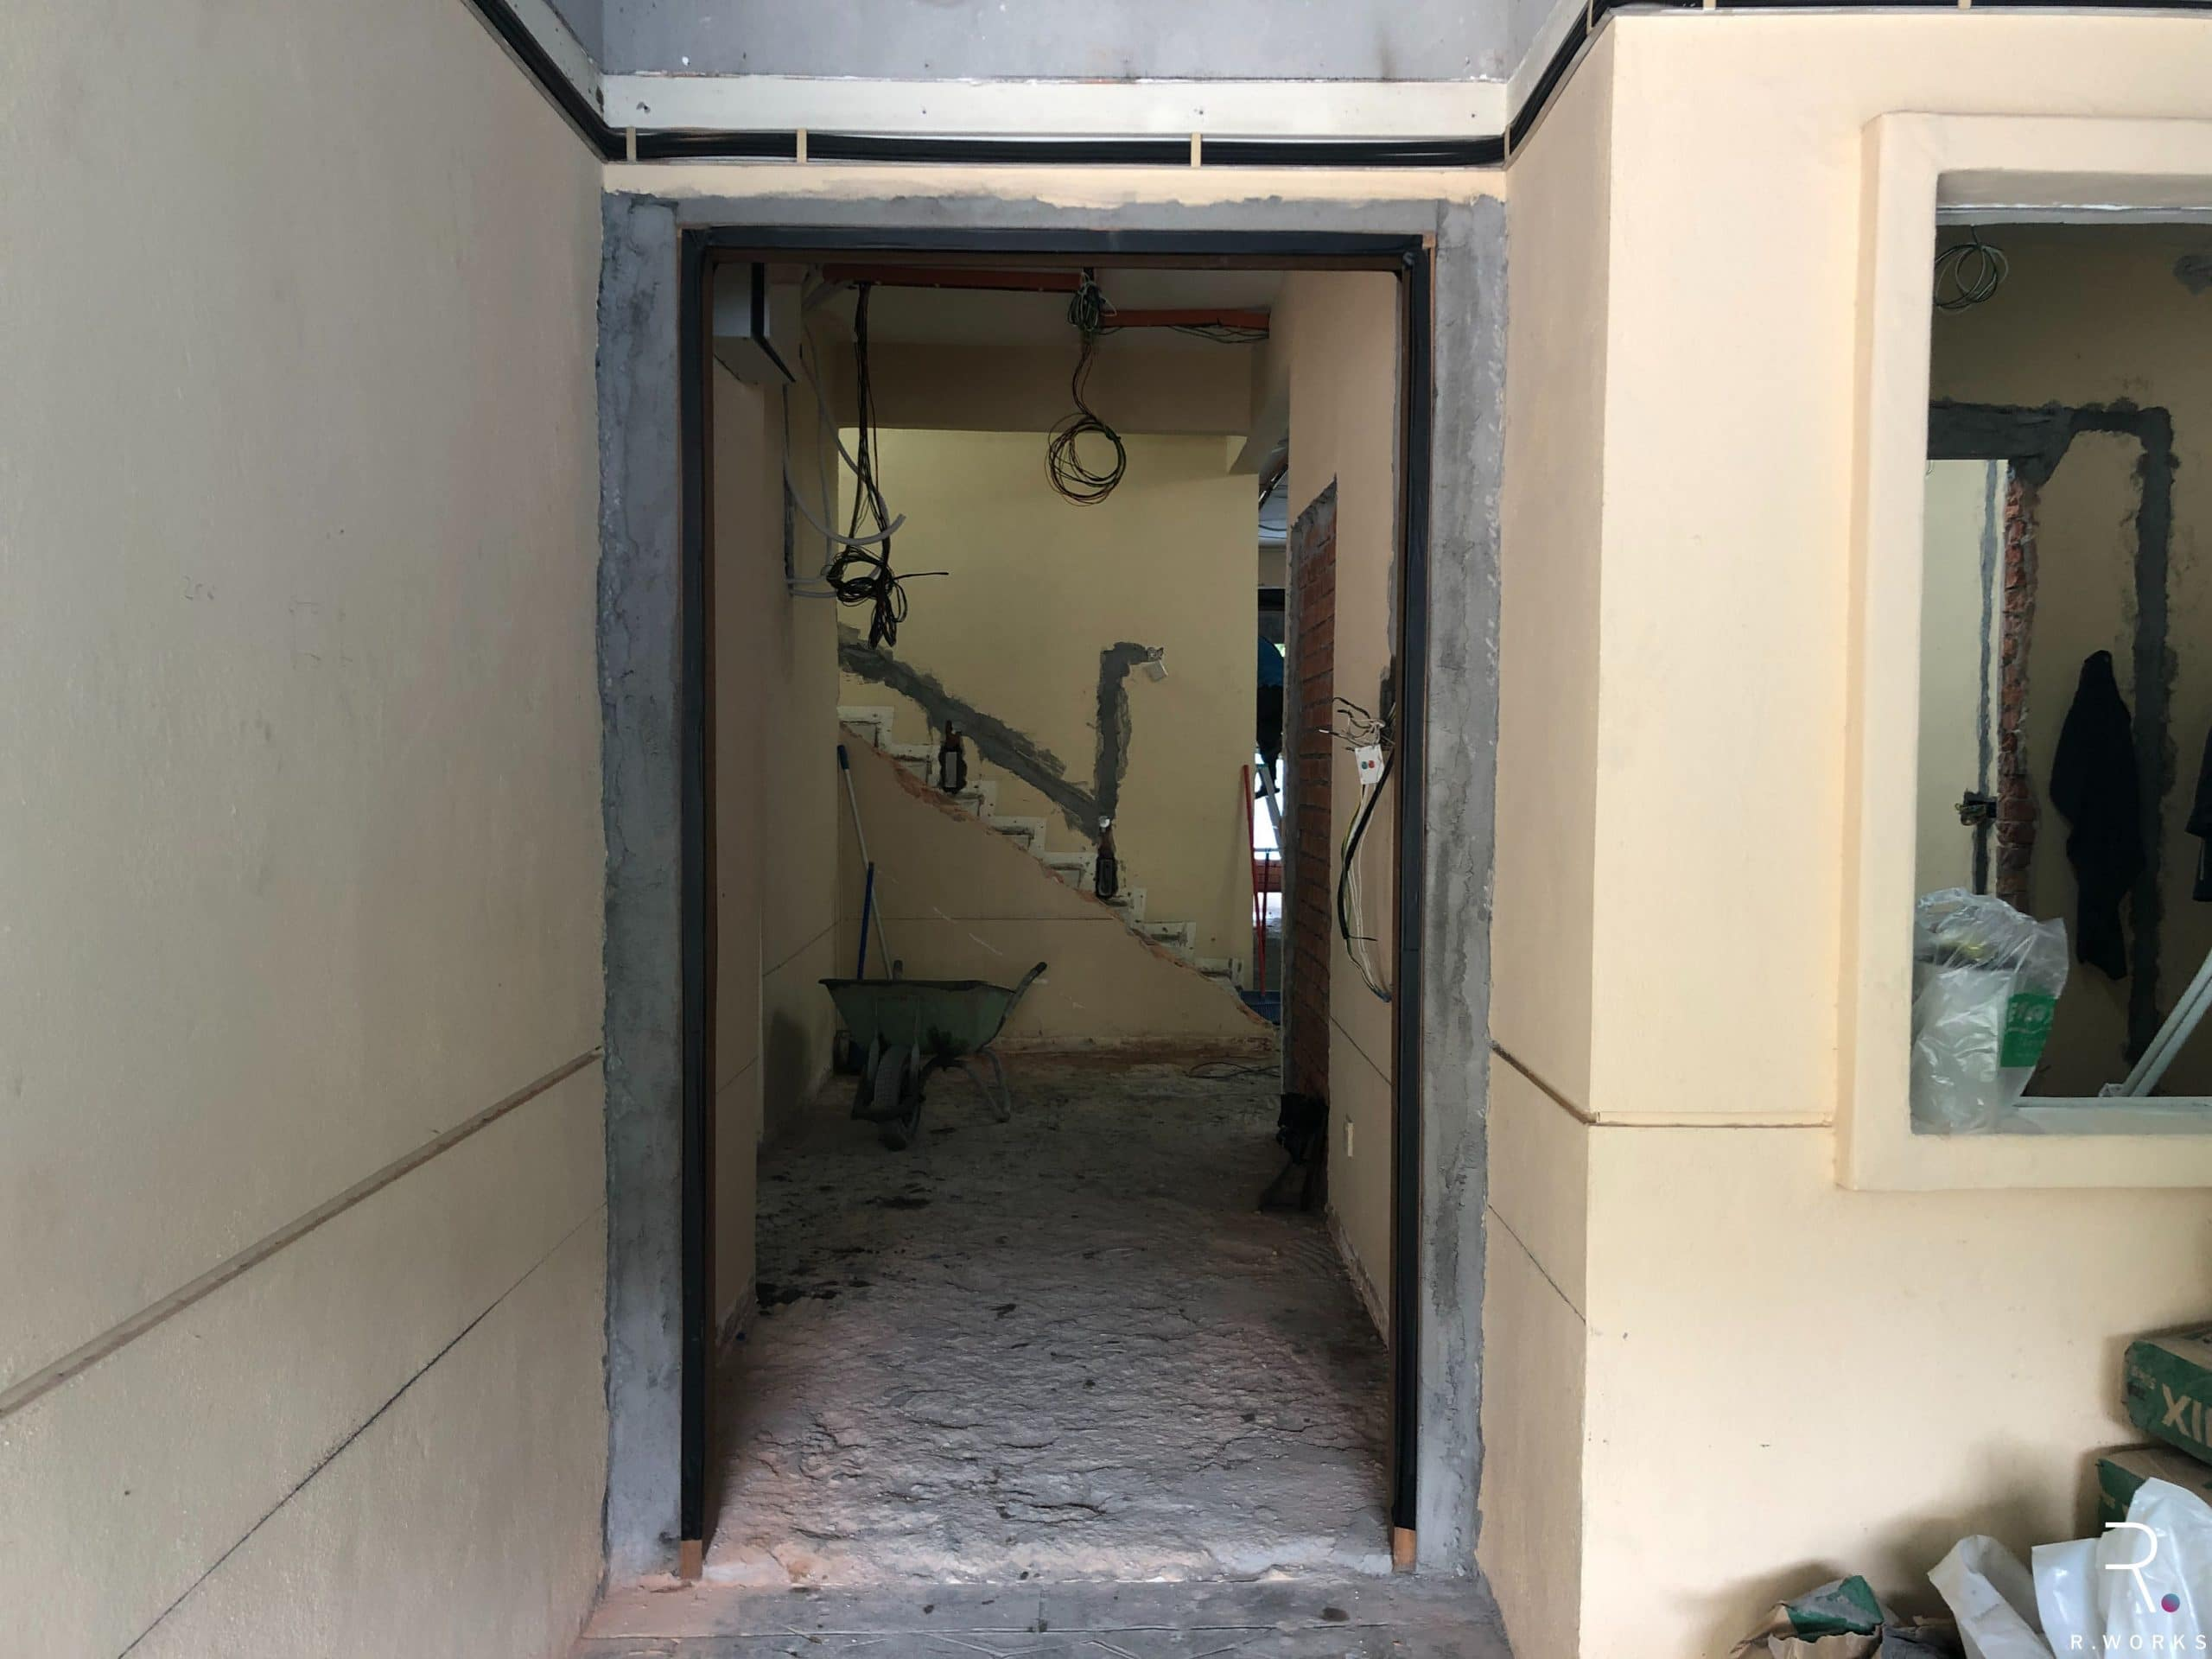 Townhouse entrance before interior design